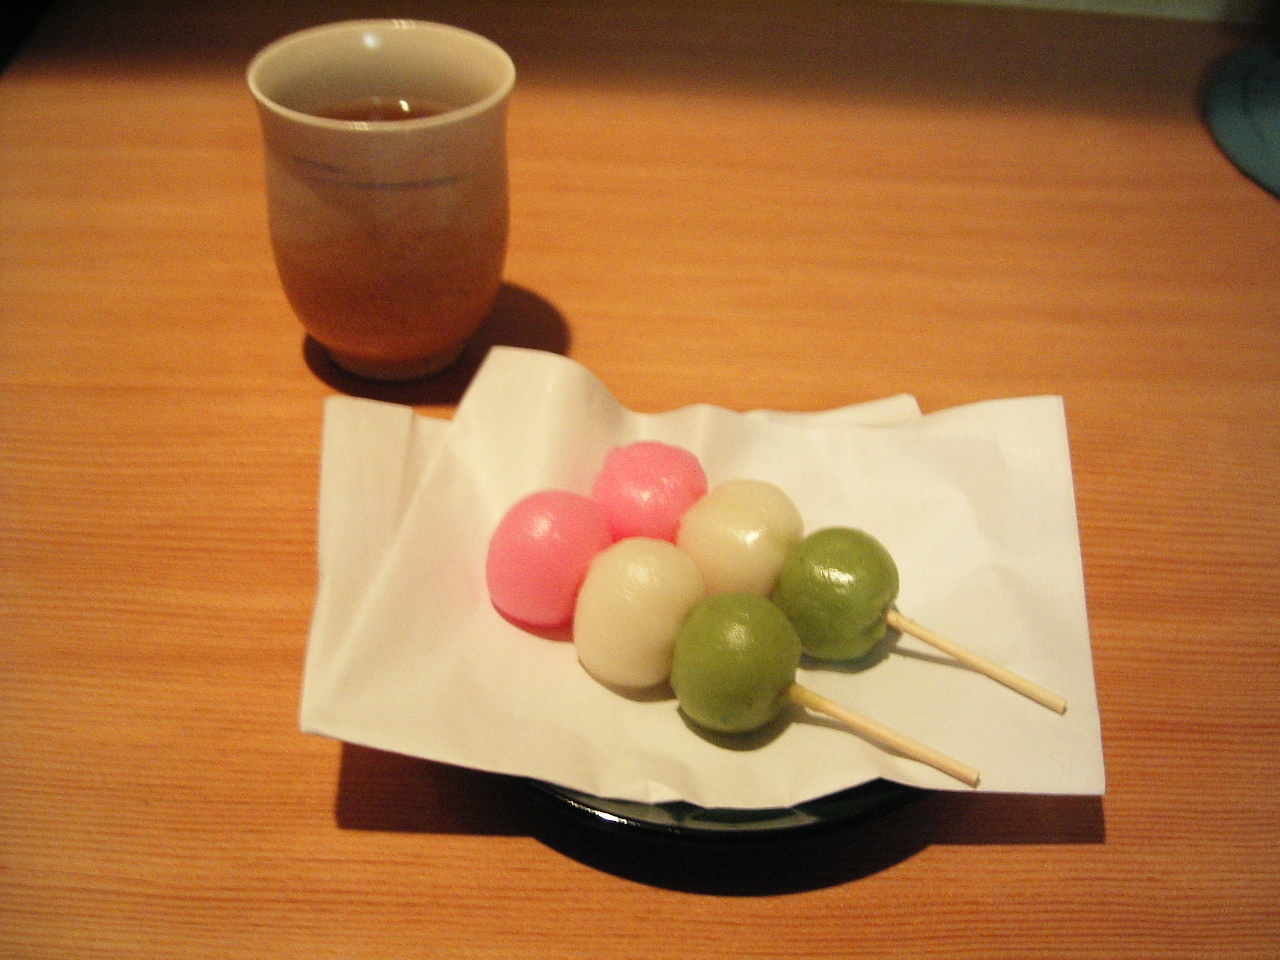 http://upload.wikimedia.org/wikipedia/commons/2/2b/Hanami_Dango.jpg